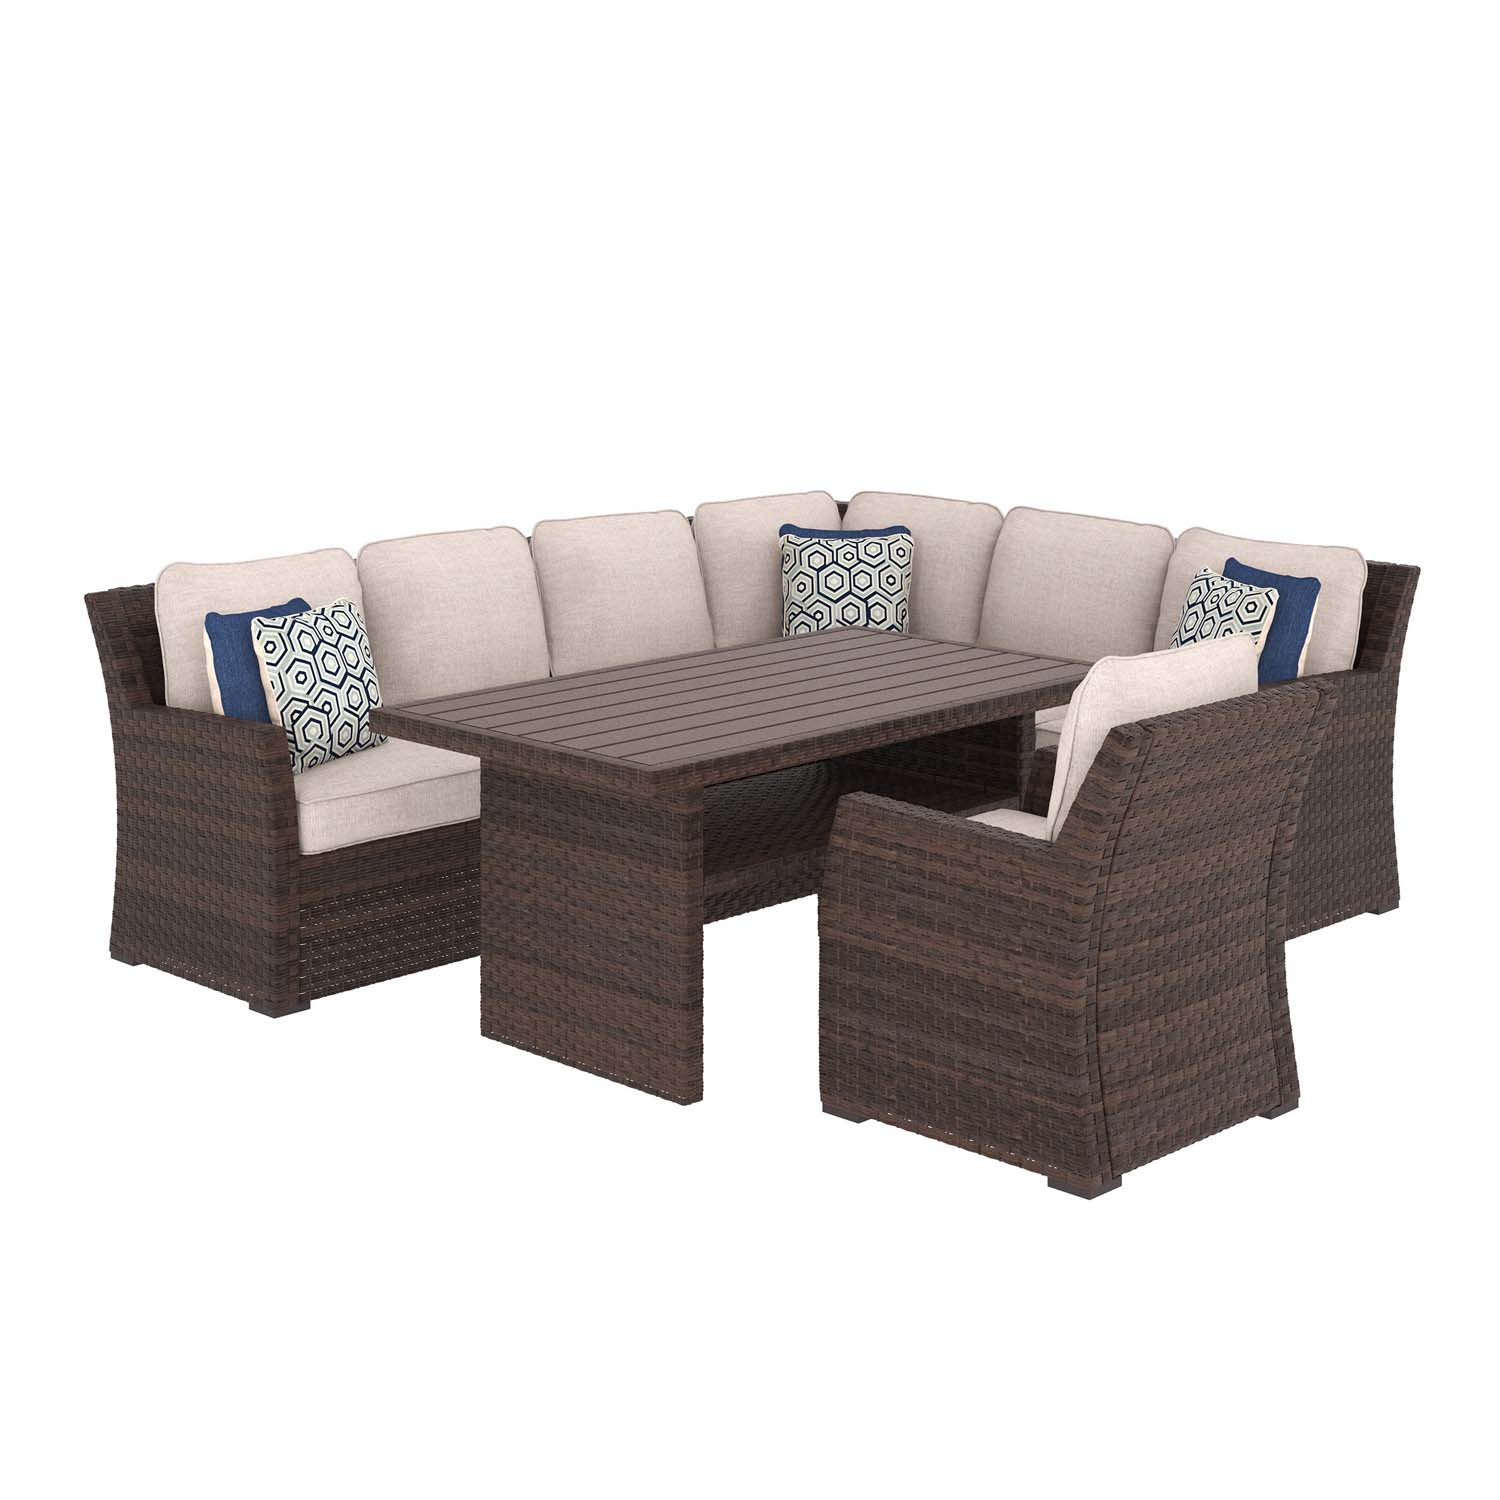 Merveilleux Salceda   Beige/Brown 2 Piece Patio Set